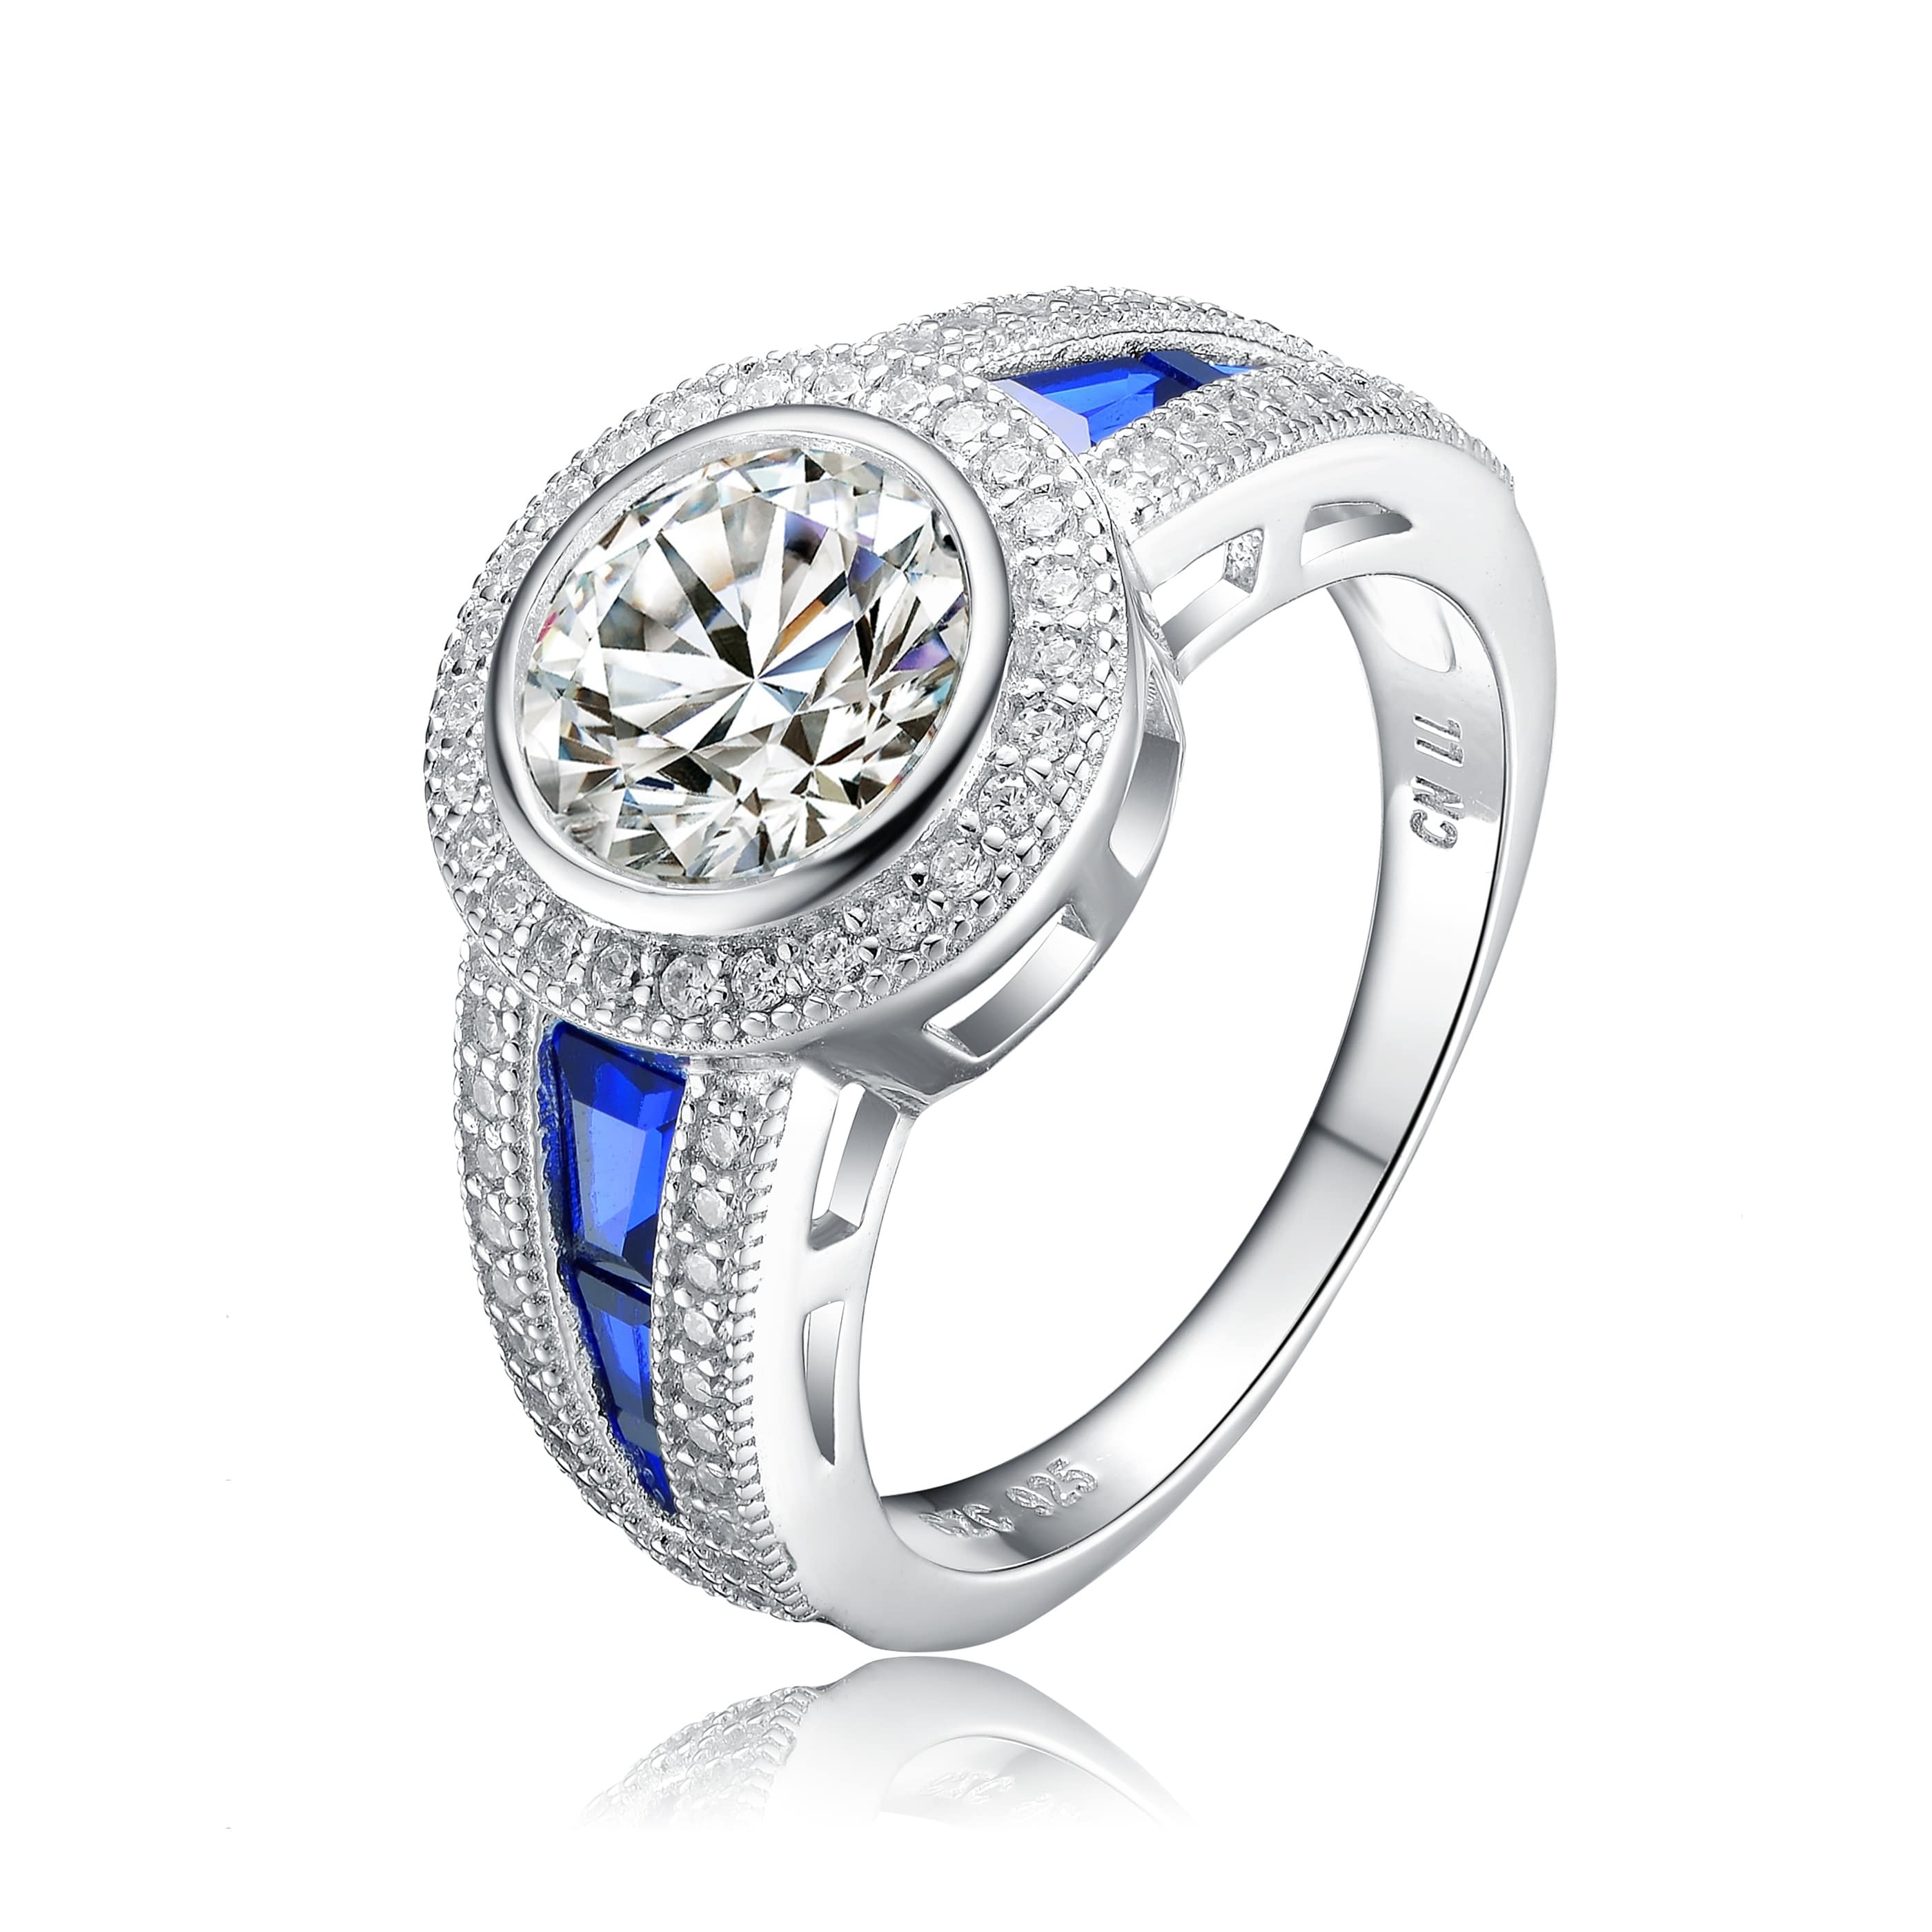 Round Clear Cubic Zirconia Solitaire Ring Rhodium Plated Sterling Silver